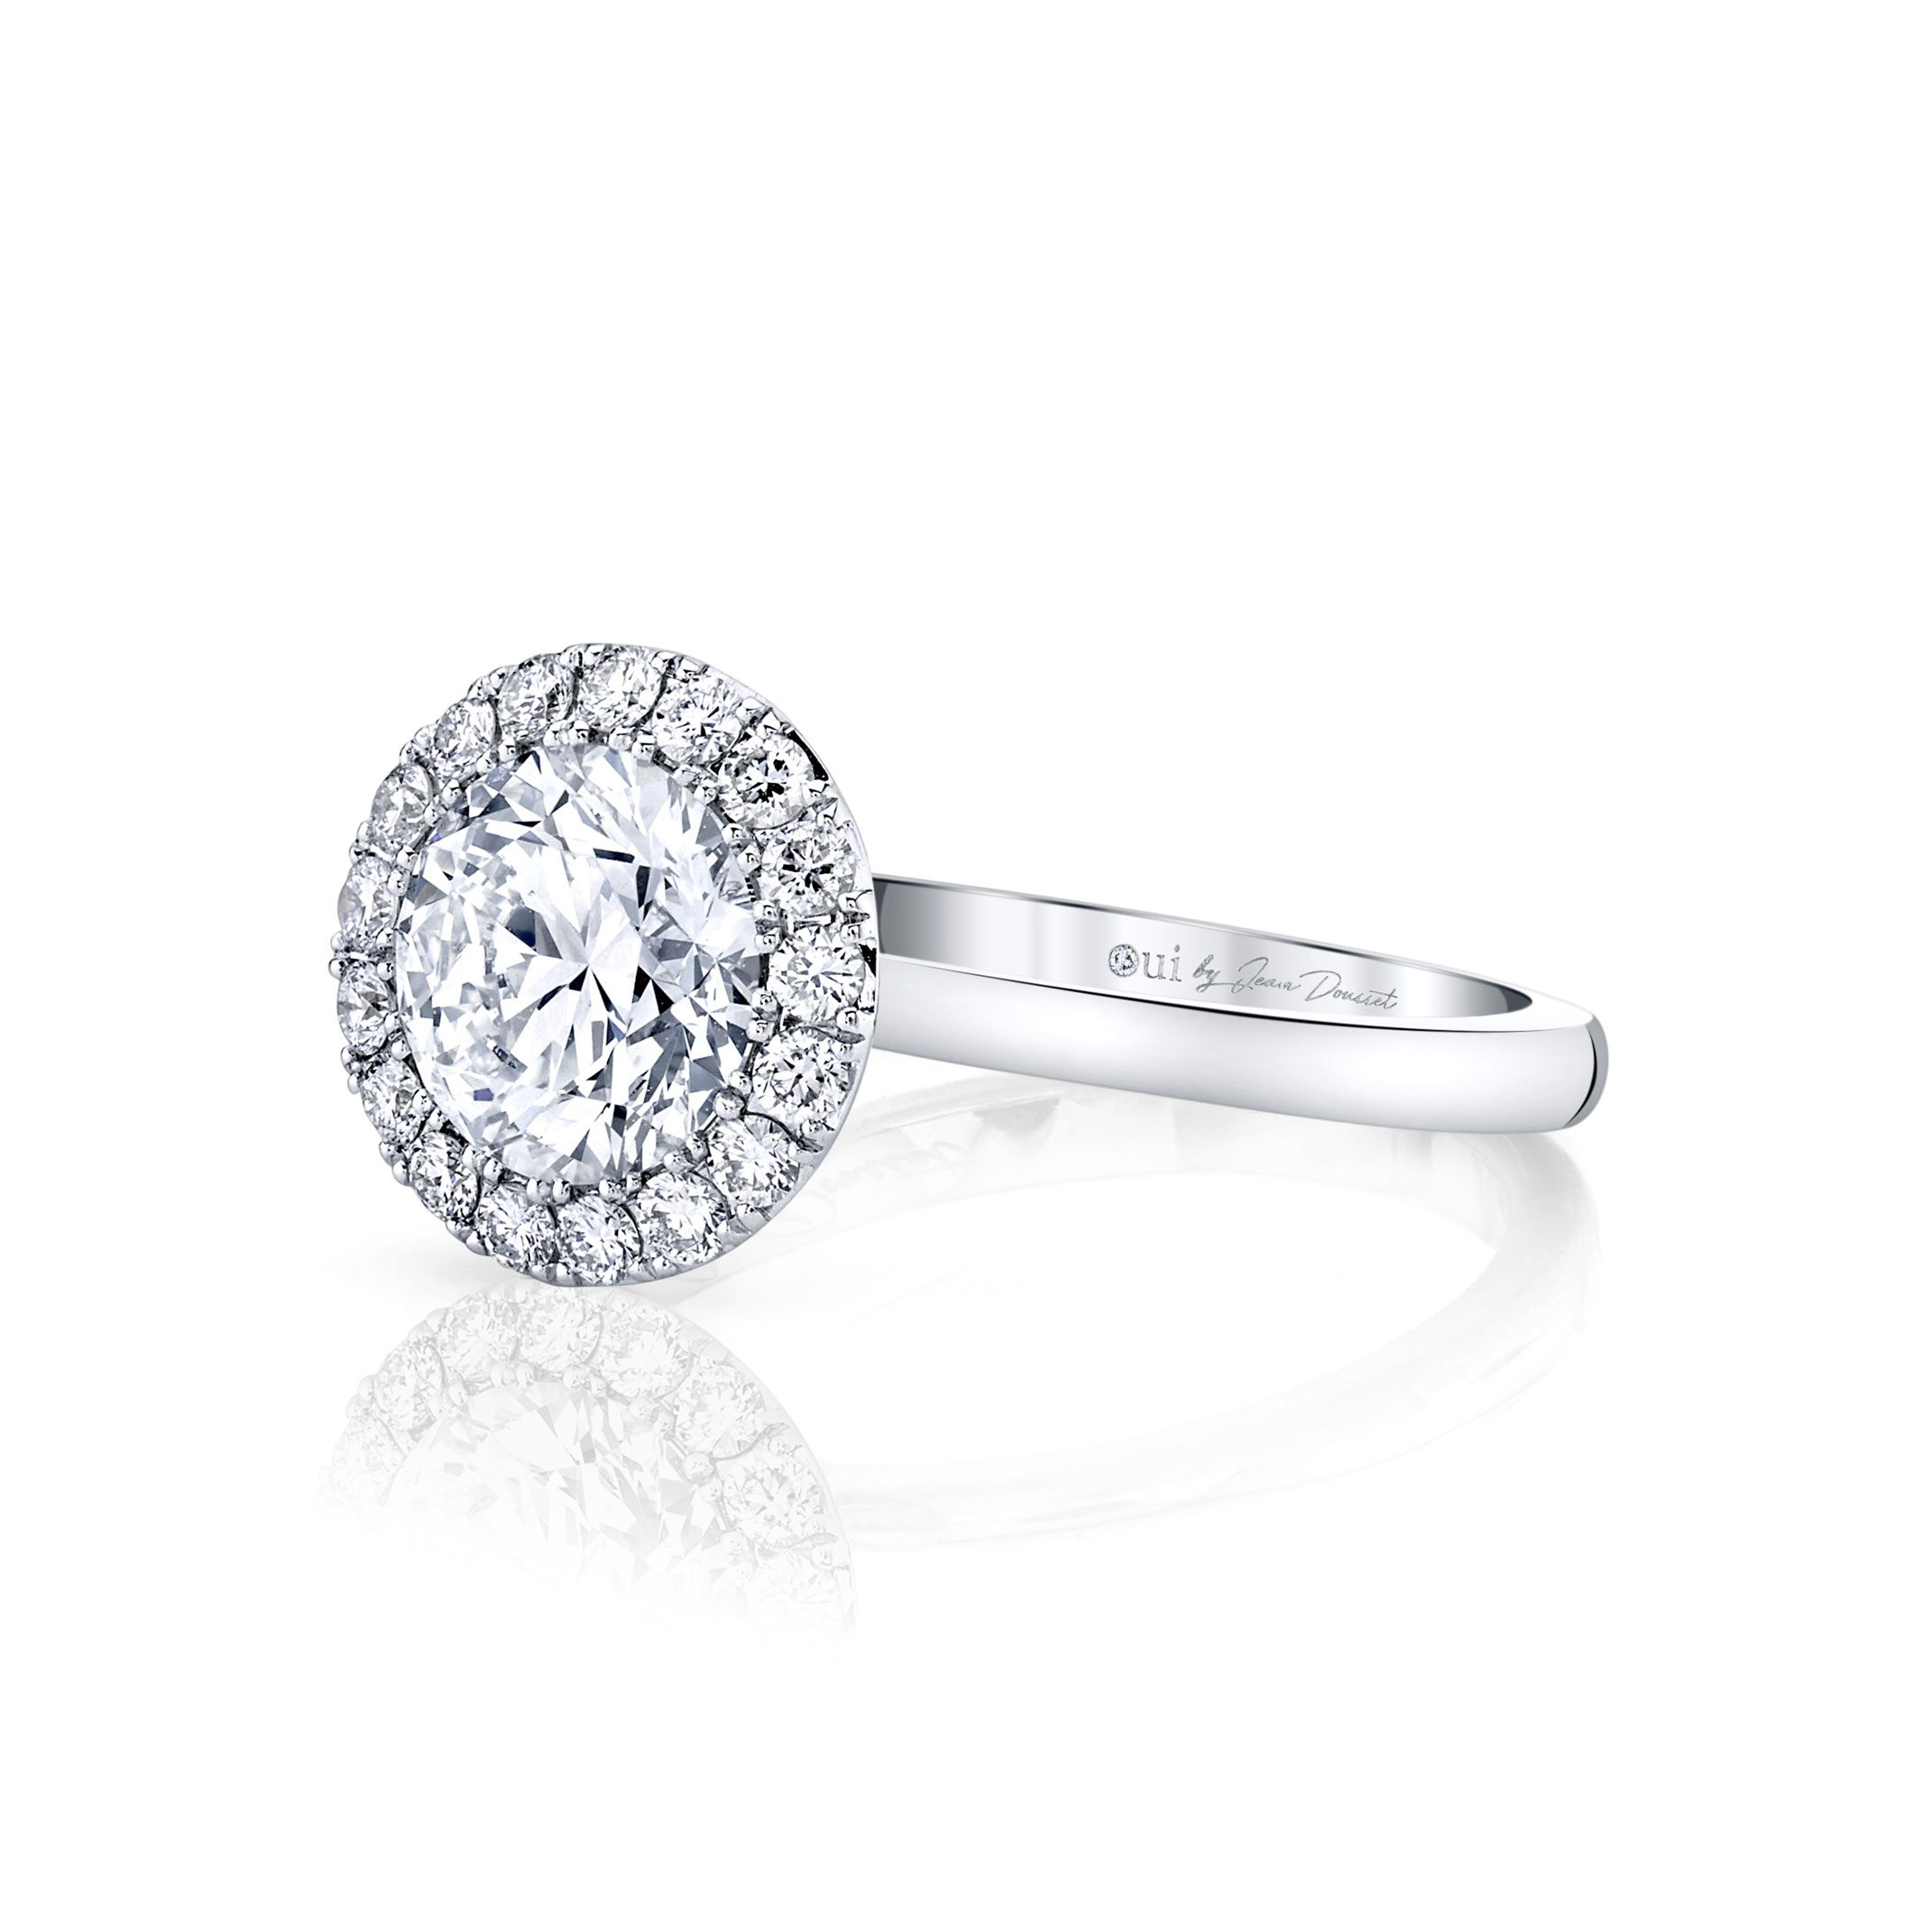 Colette Seamless Halo® Round Brilliant Engagement Ring 18k White Gold Side Shot